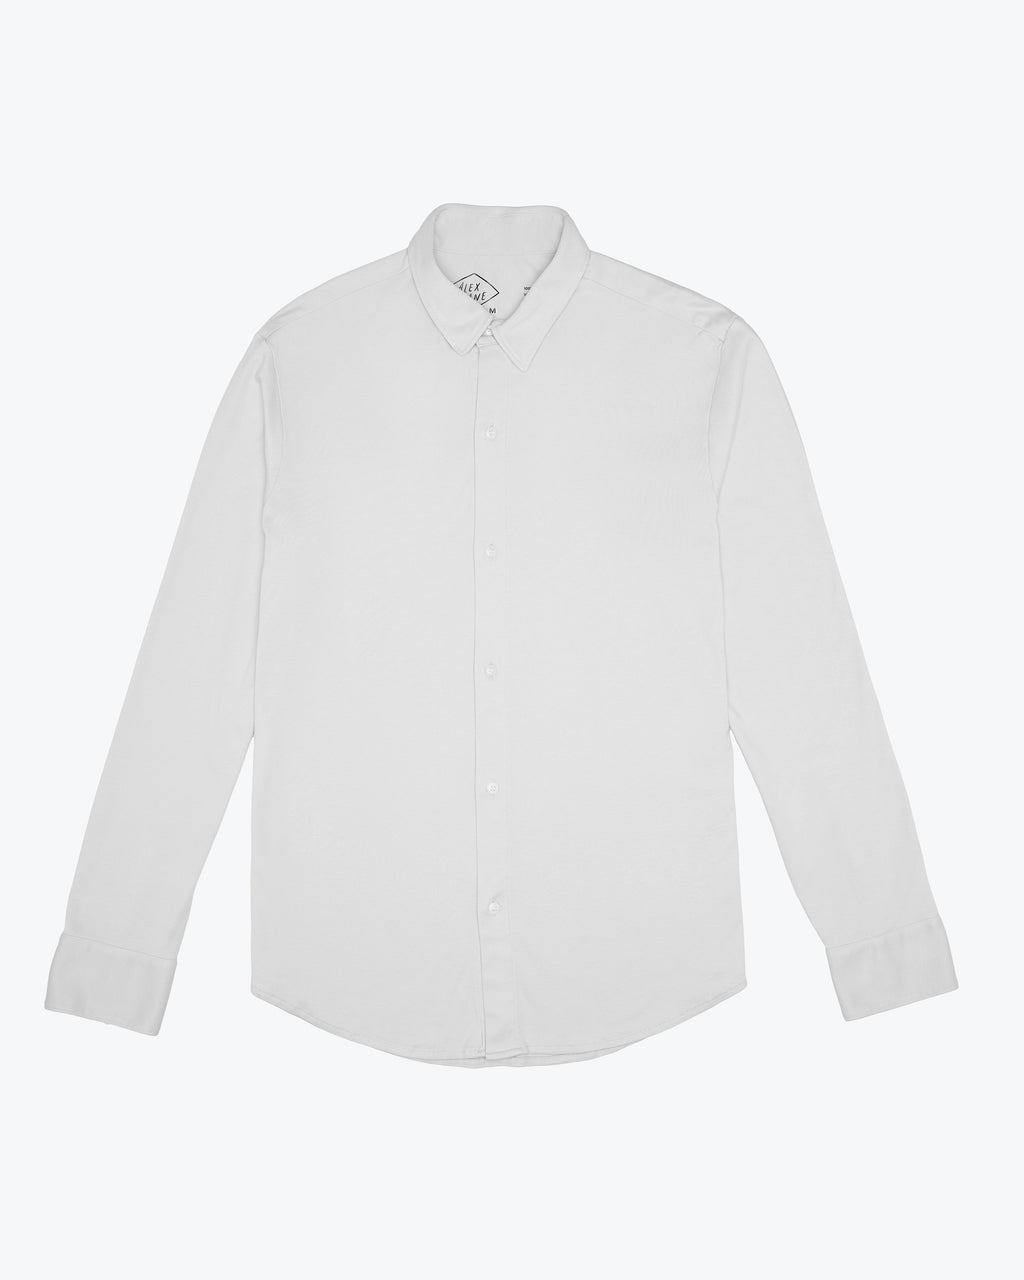 Men's Blanket Shirt / Bone